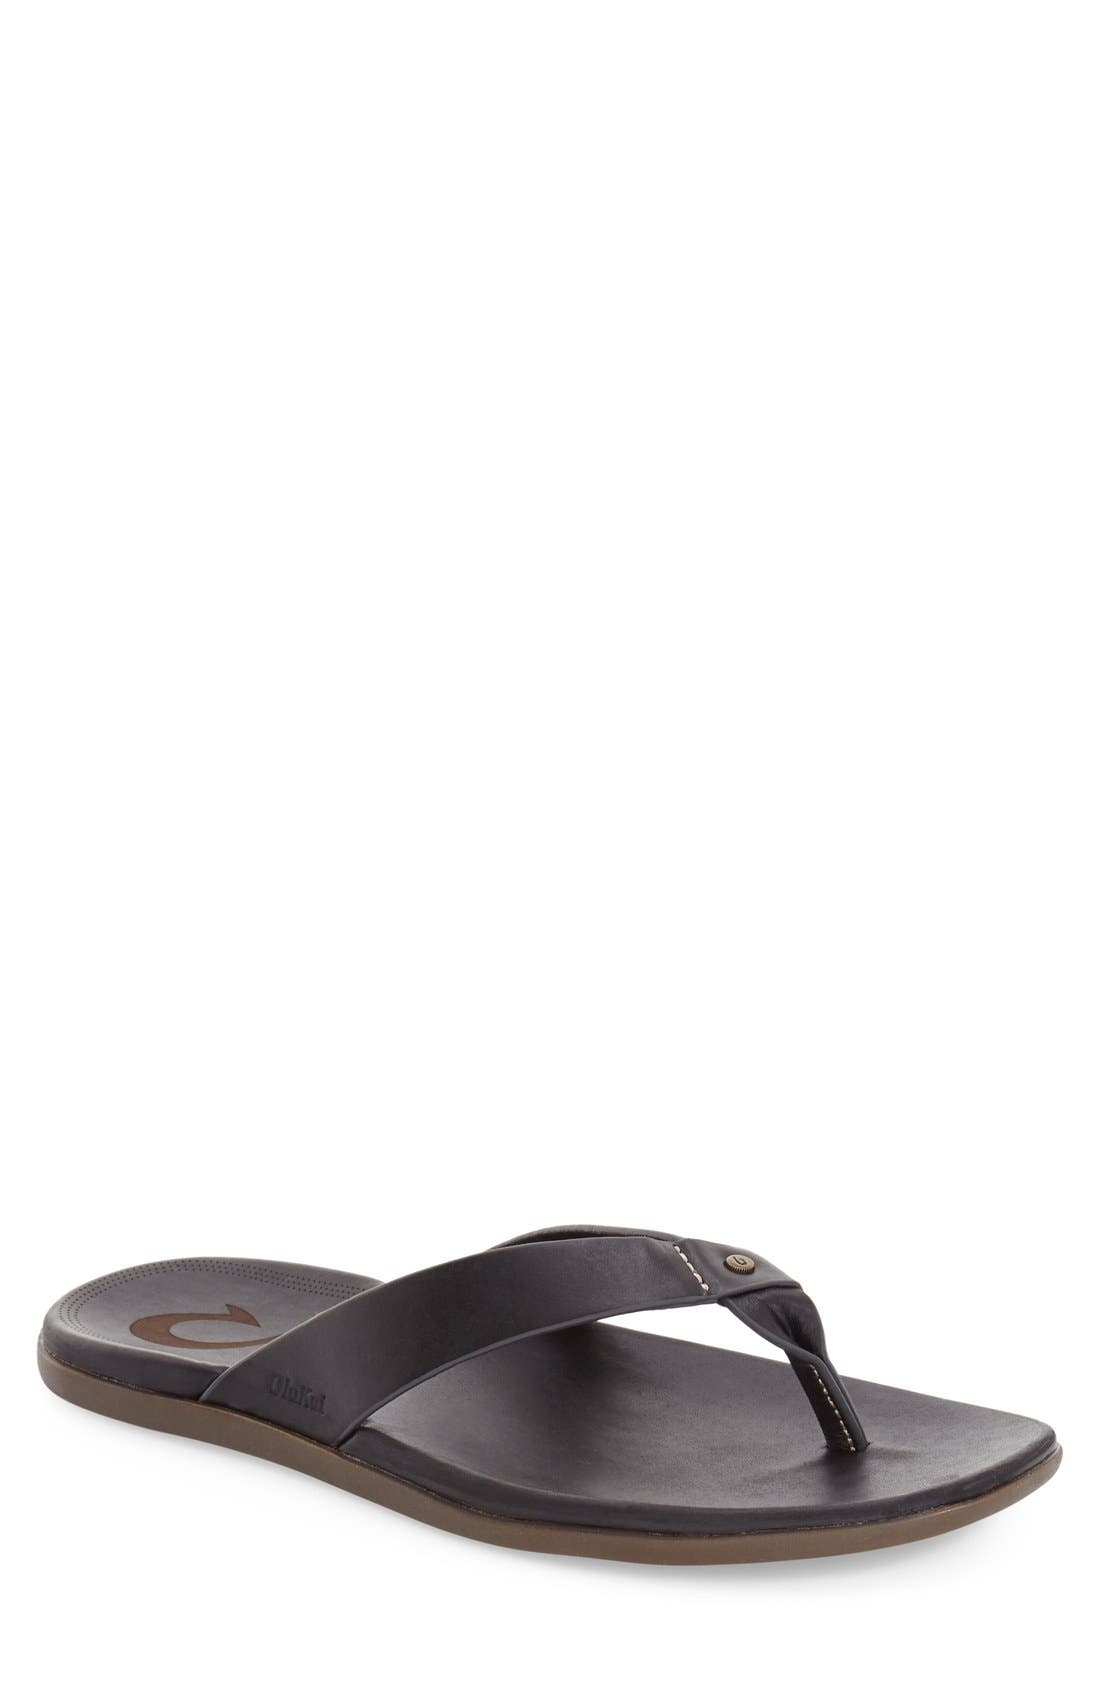 'Kapua' Flip Flop, Main, color, 001